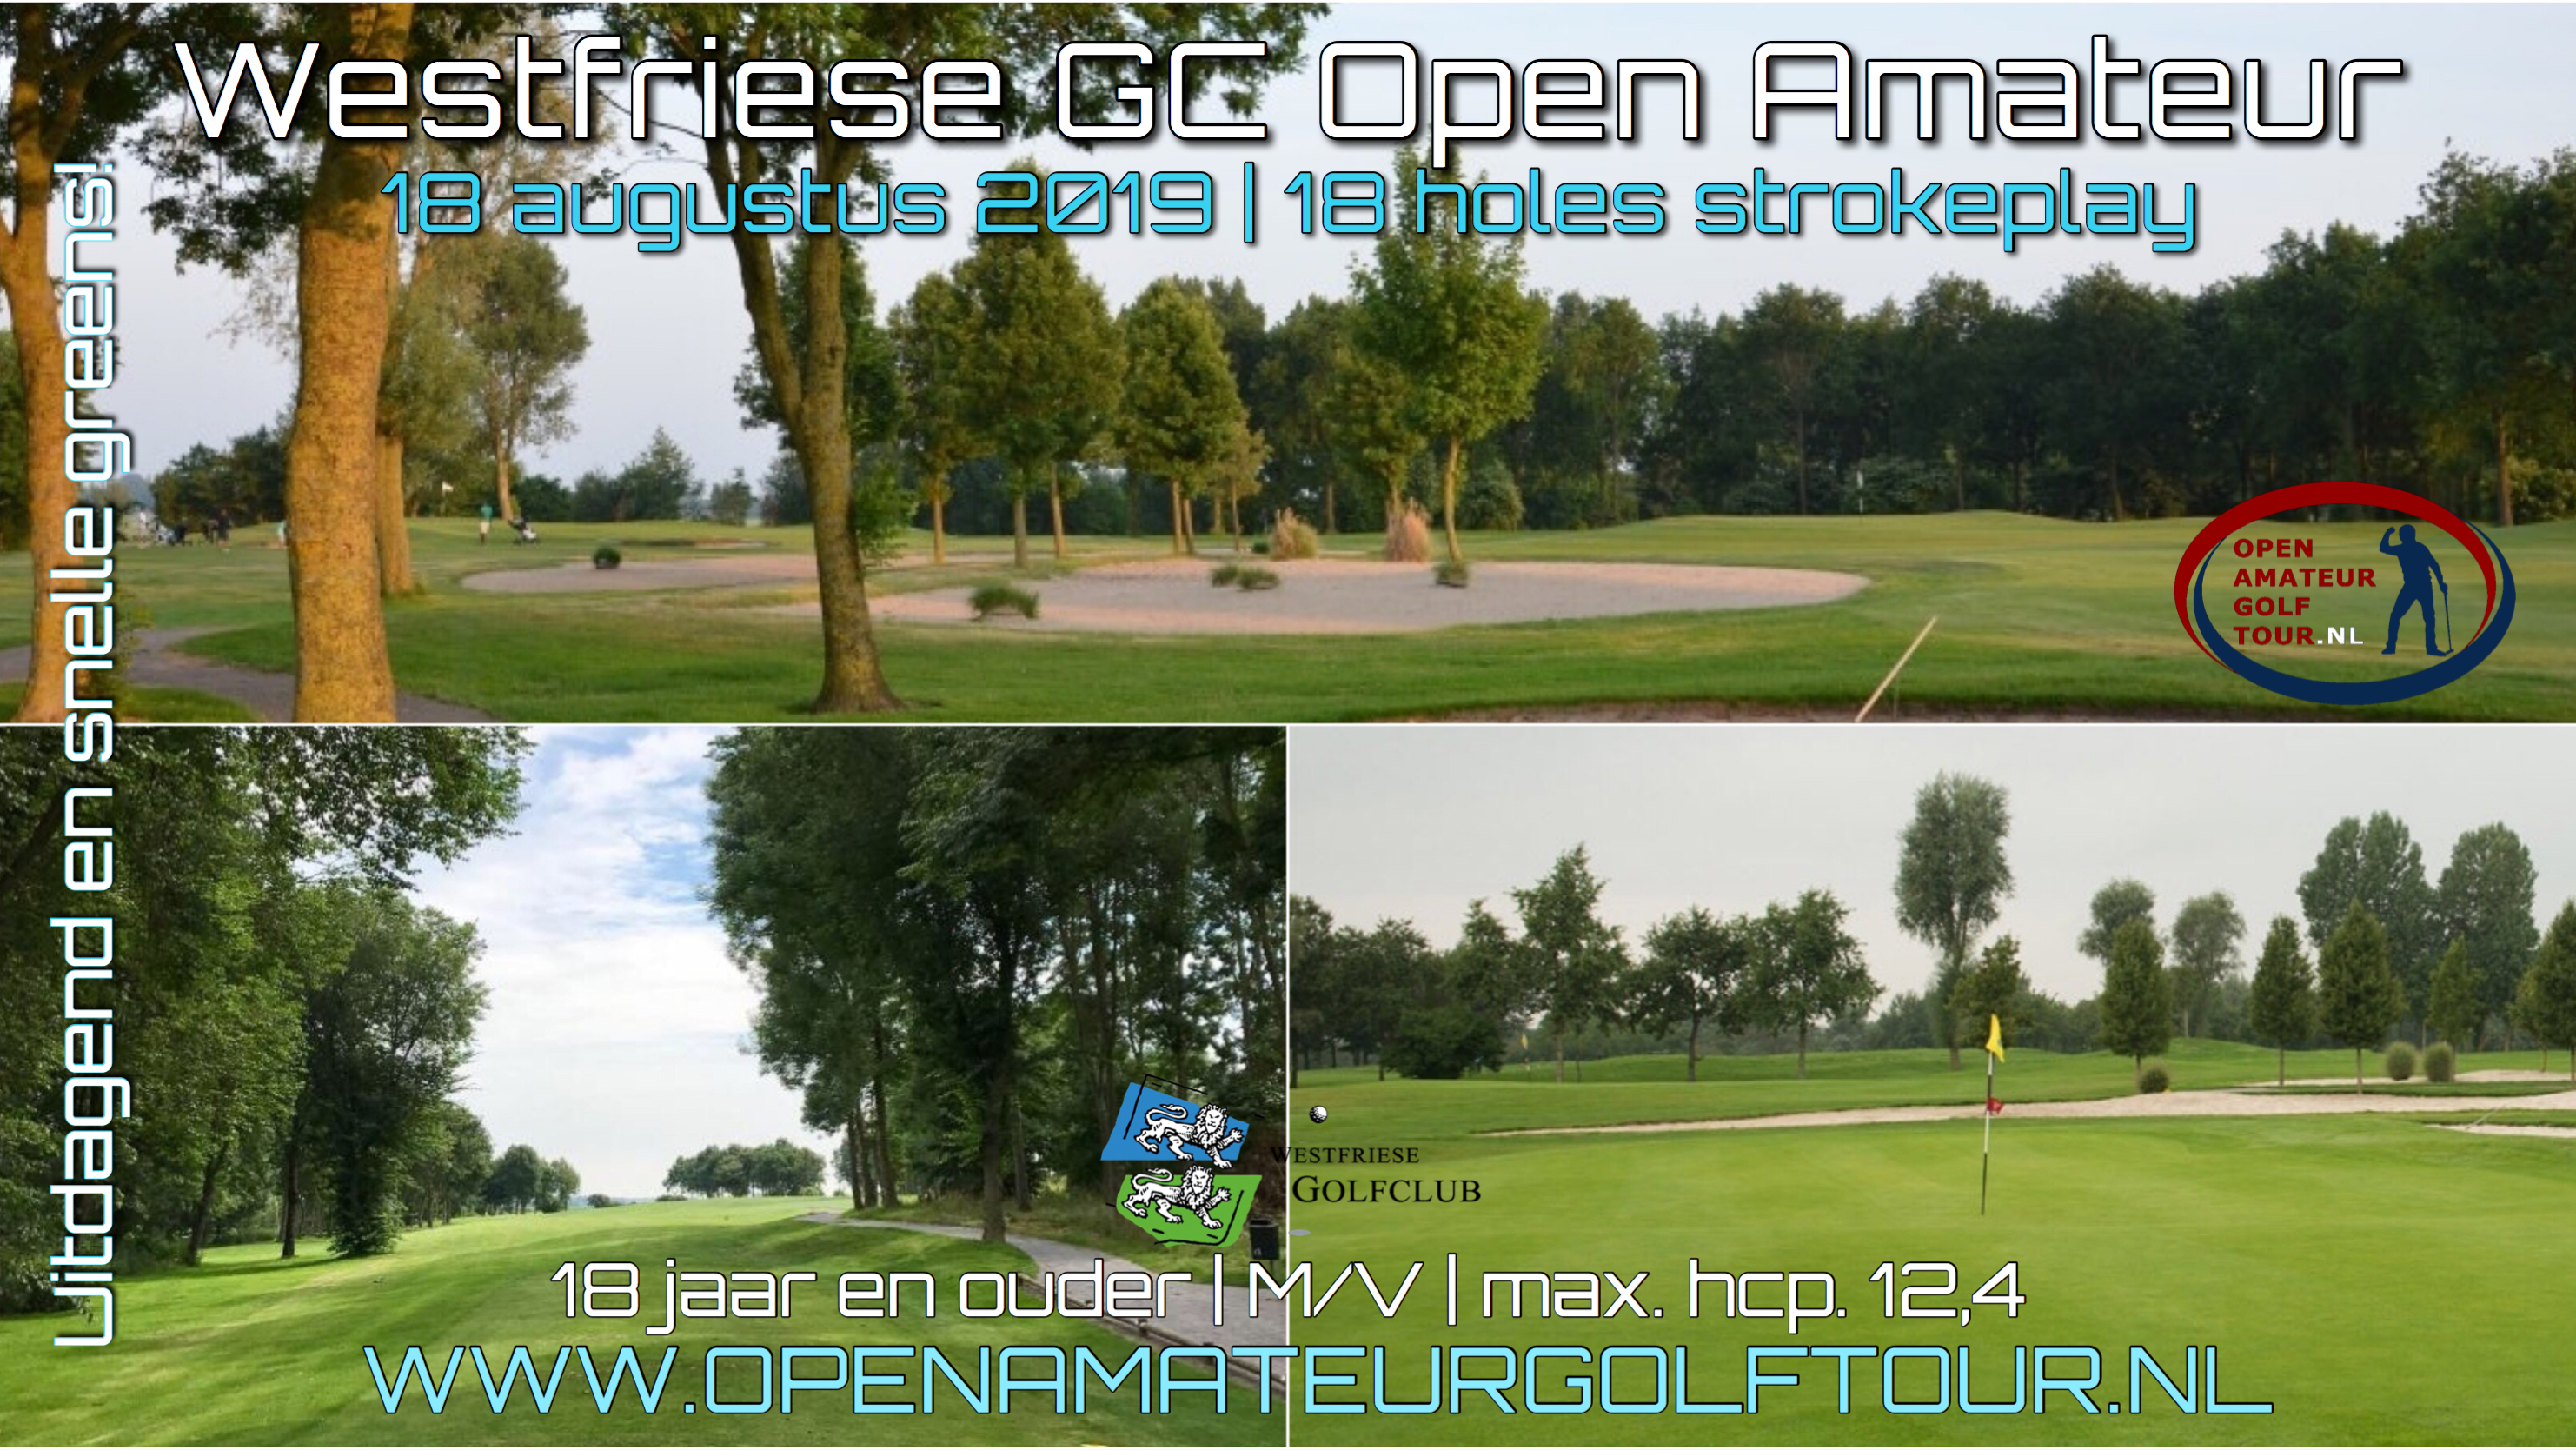 Westfriese GC Open Amateur poster 2019